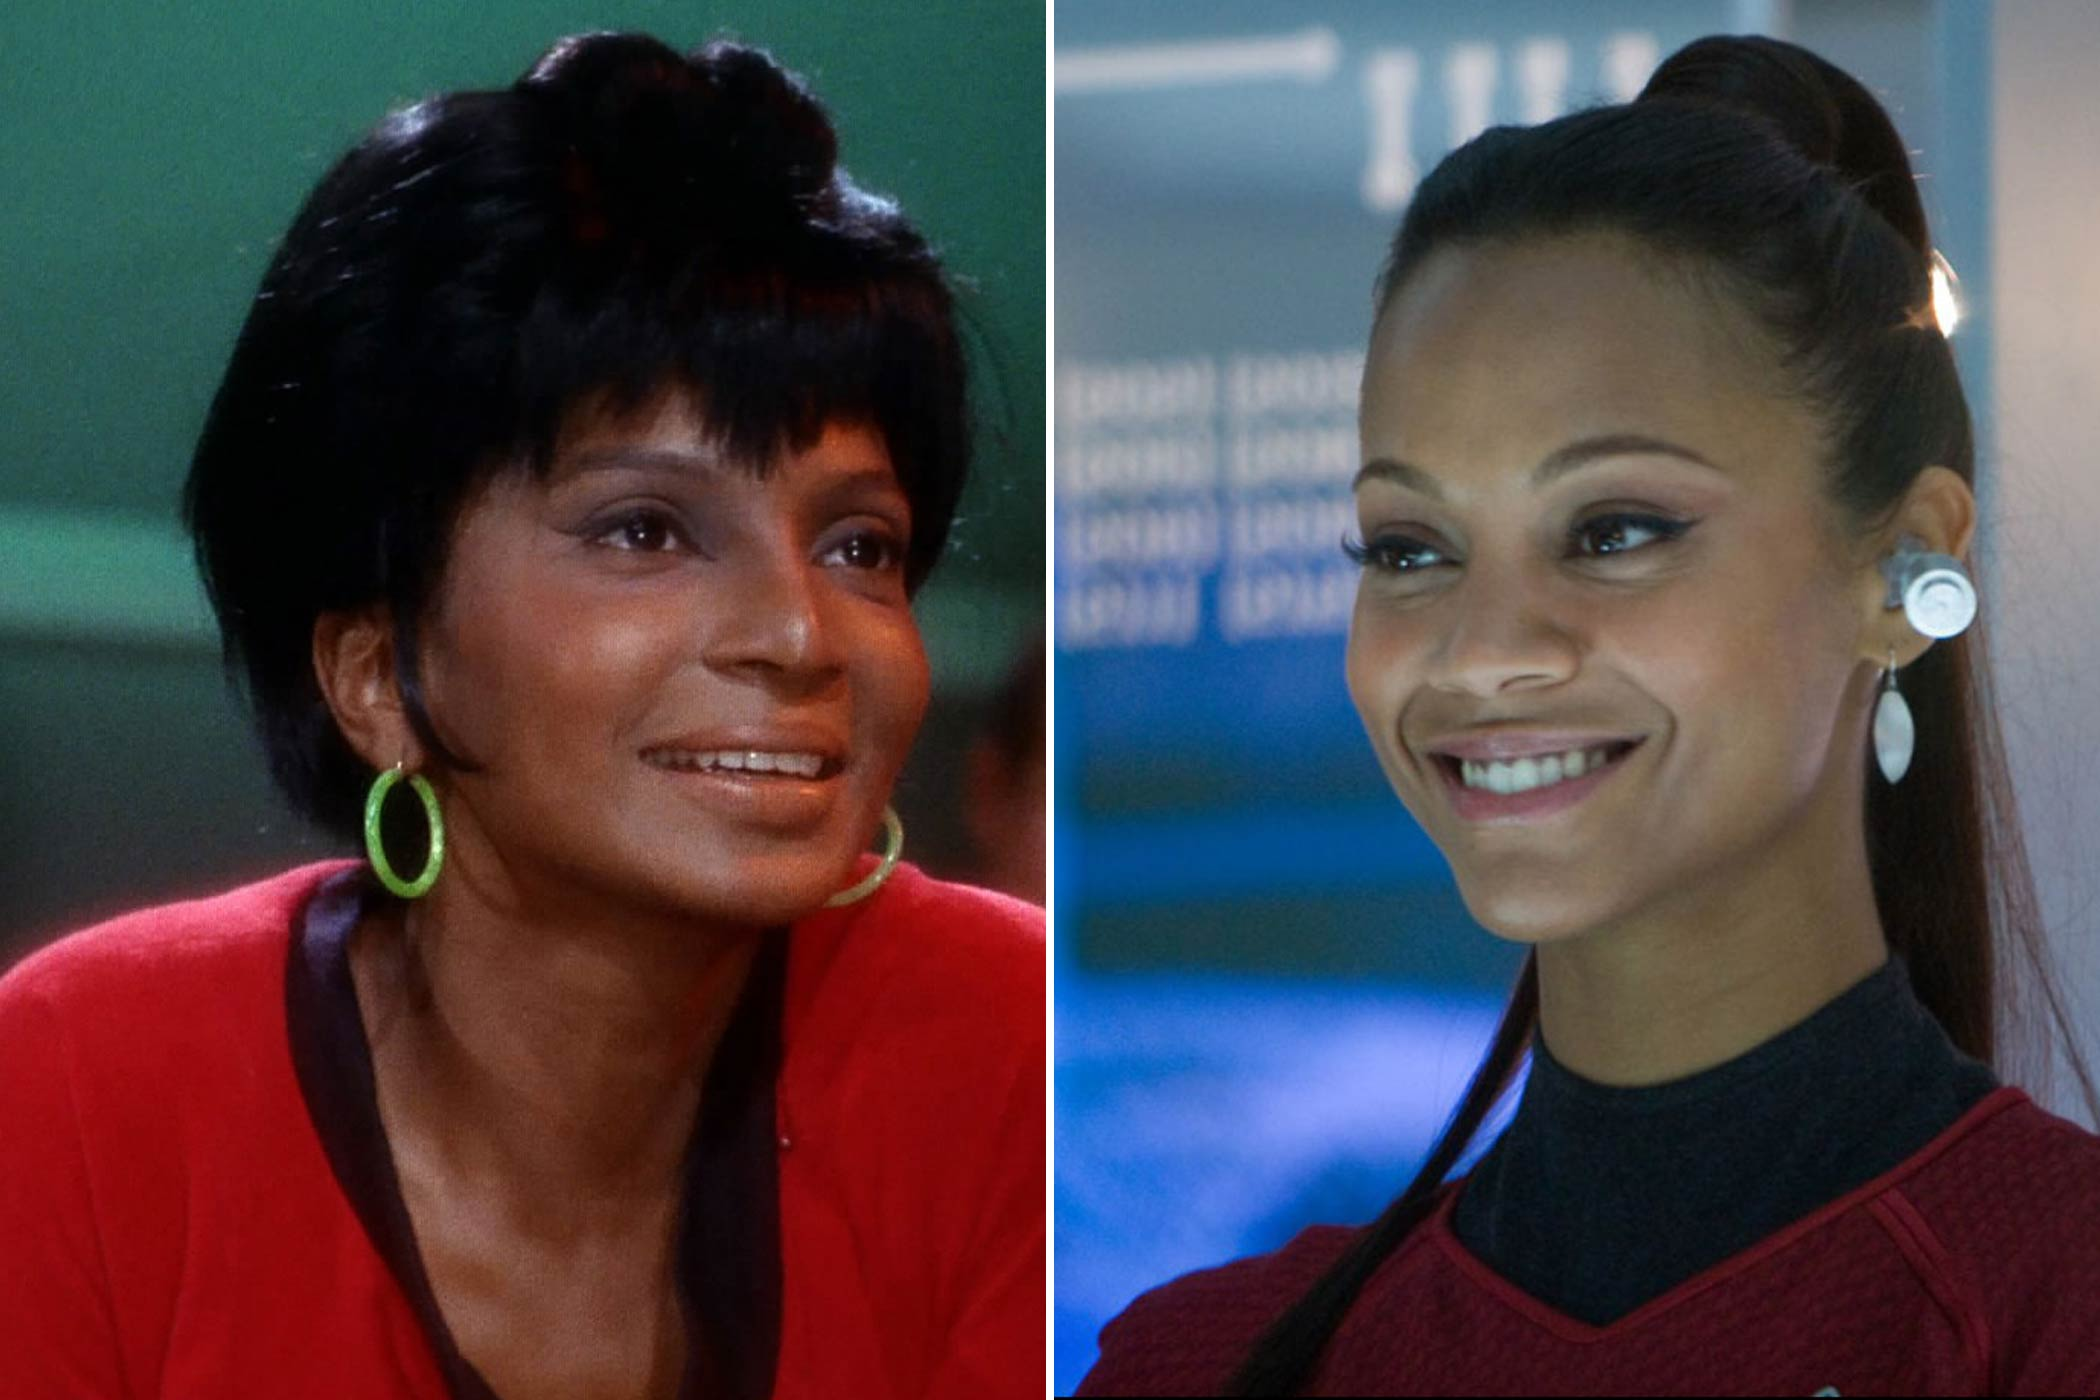 From left: Nichelle Nichols and Zoe Saldana as Nyota Uhura